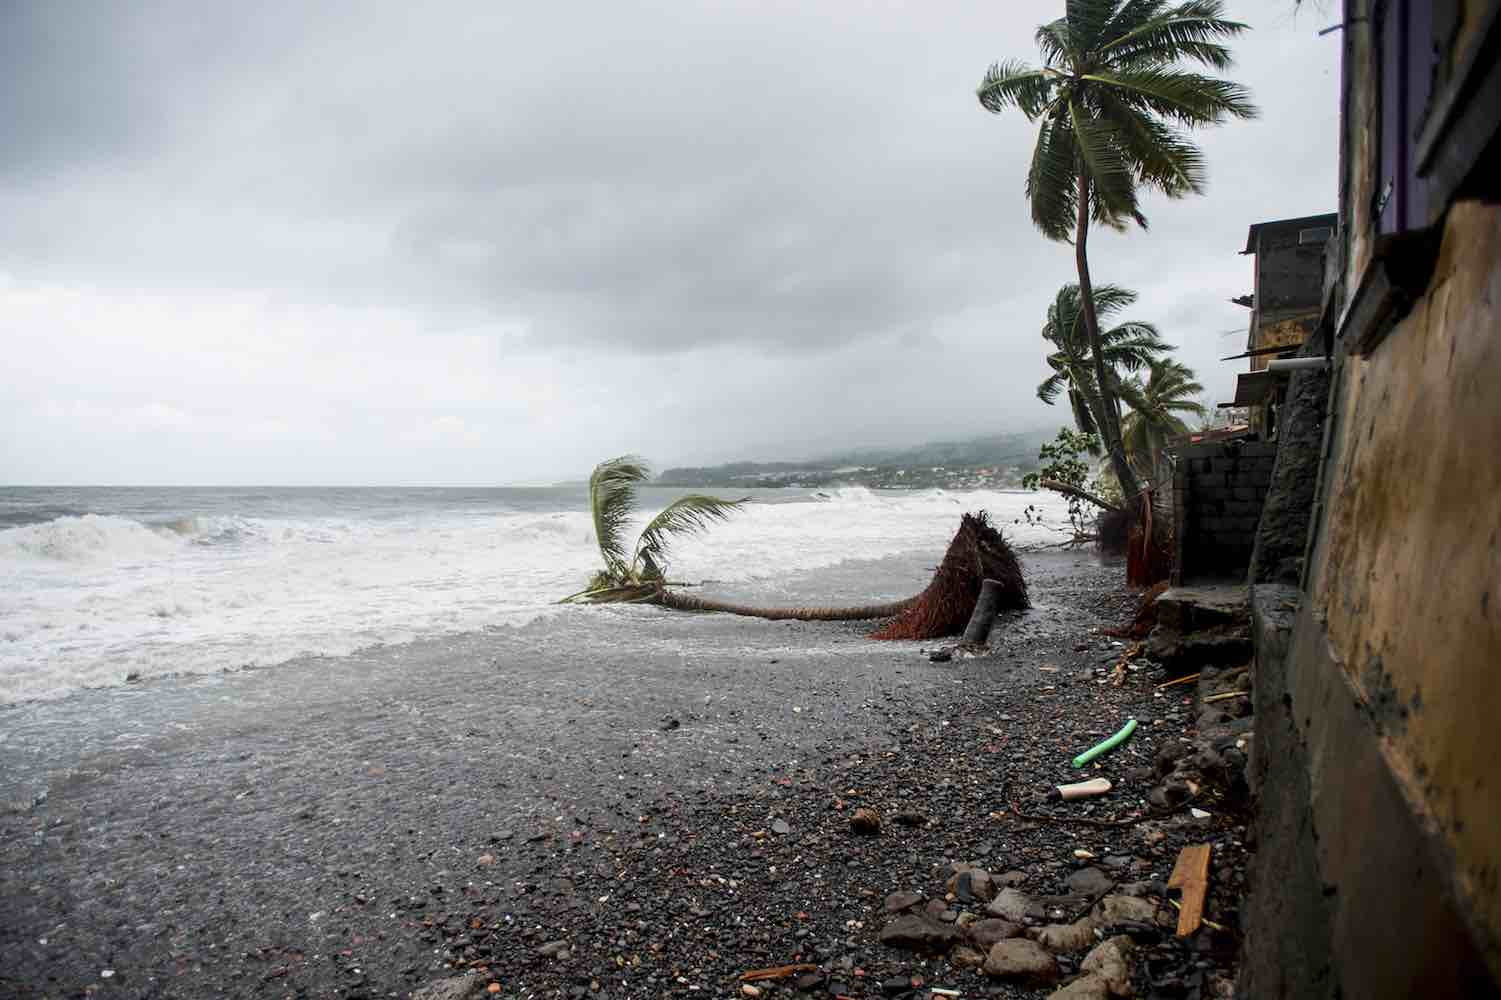 "<div class=""meta image-caption""><div class=""origin-logo origin-image wtvd""><span>wtvd</span></div><span class=""caption-text"">A picture shows an uprooted tree on the beach in Saint-Pierre, on the French Caribbean island of Martinique, after it was hit by Hurricane Maria, on September 19, 2017. (LIONEL CHAMOISEAU/AFP/Getty )</span></div>"